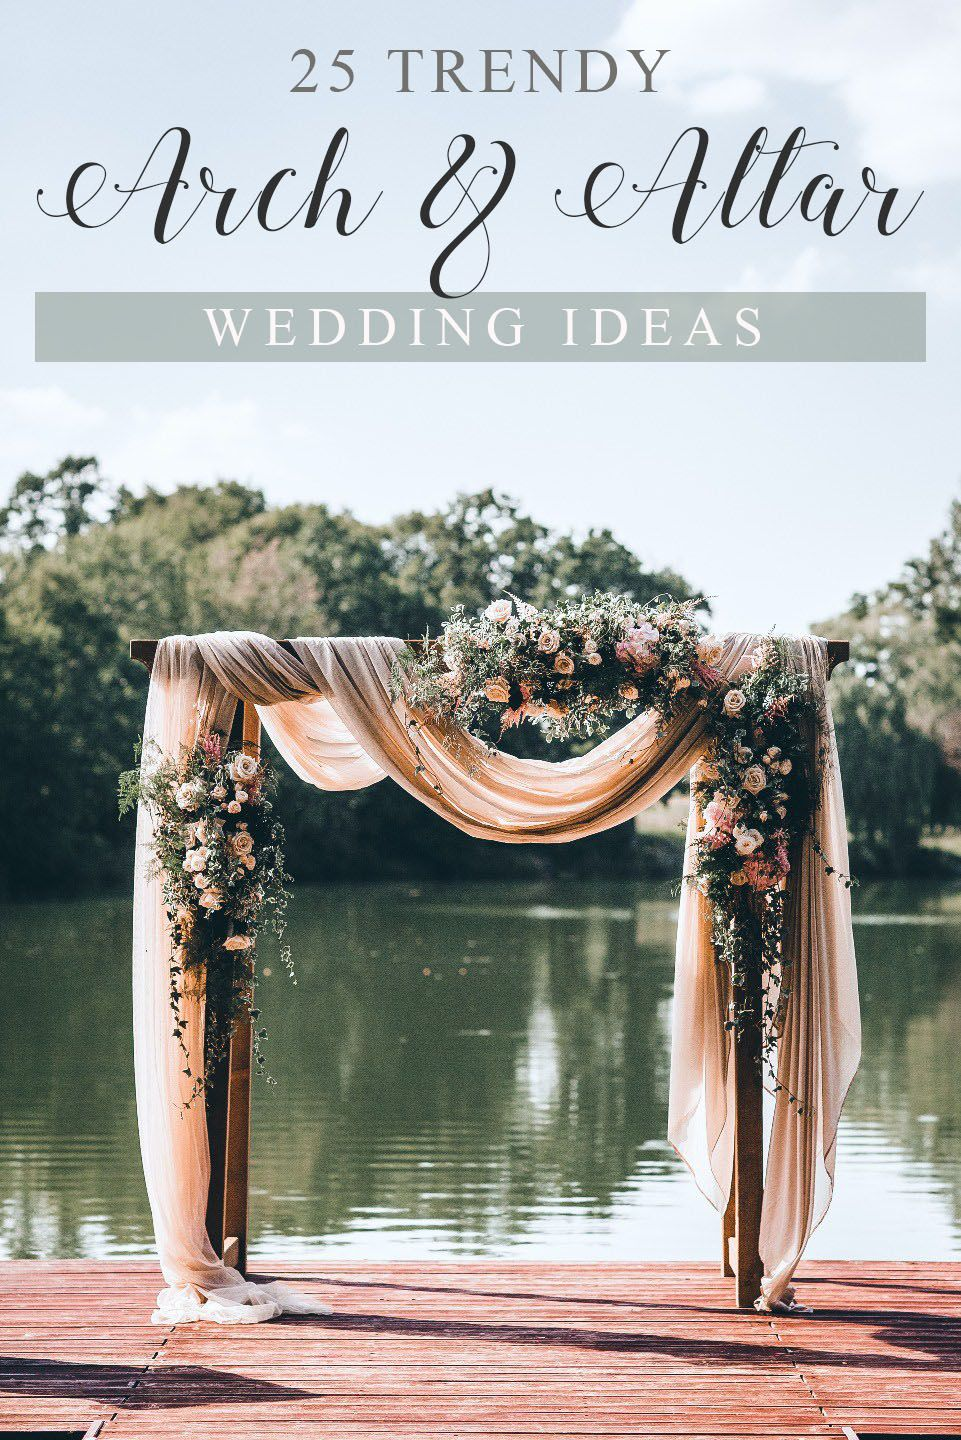 25 Trending Wedding Altar Arch Decoration Ideas Elegantweddinginvites Com Blog Wedding Arch Wedding Altars Wedding Decorations